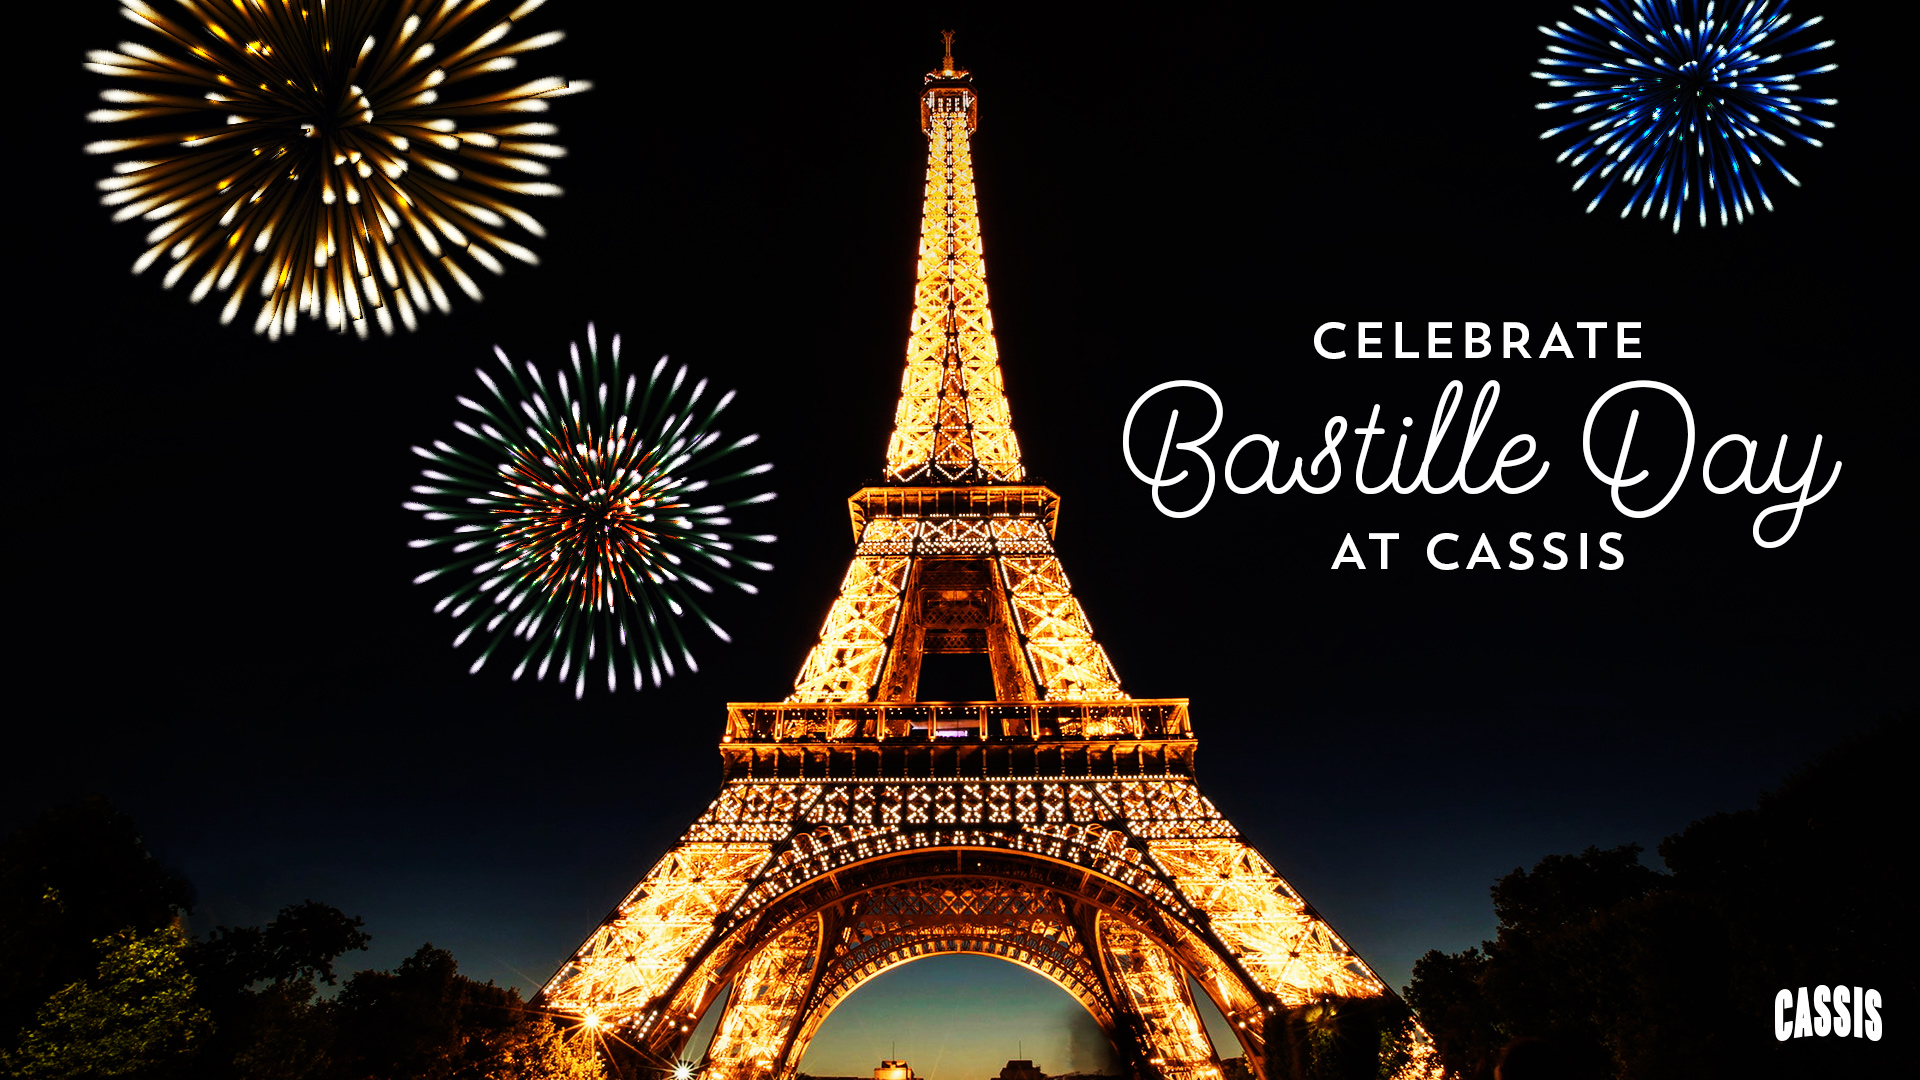 An ad for Bastille Day at Cassis. The eiffel tower at night with fireworks in the background.